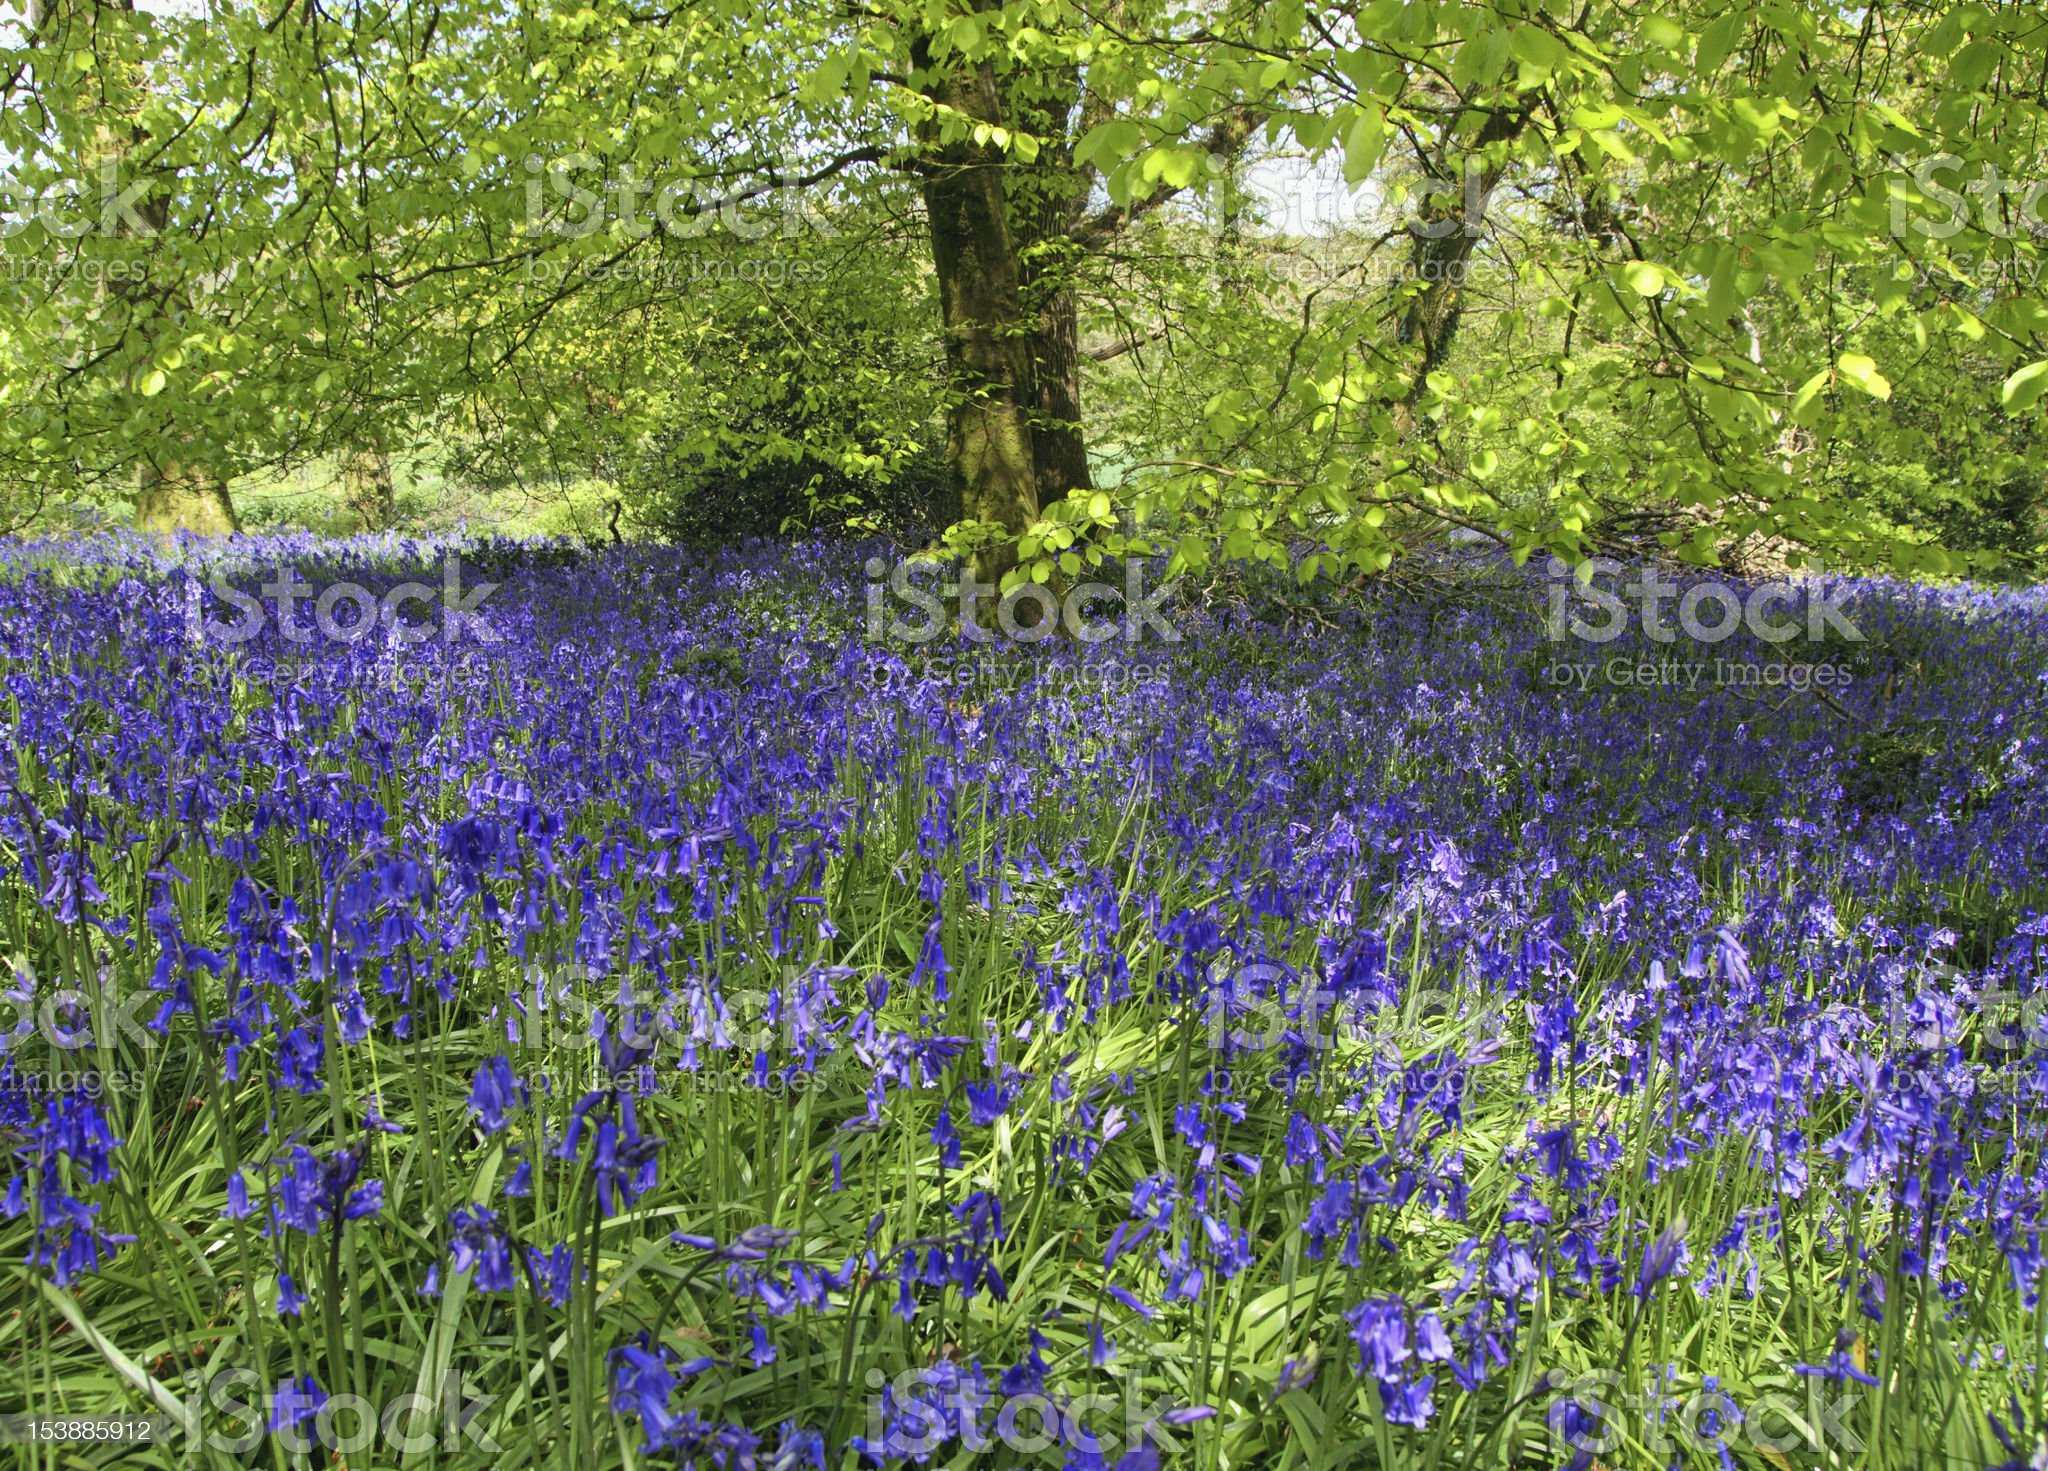 Magical bluebell woods in Dorset England. royalty-free stock photo